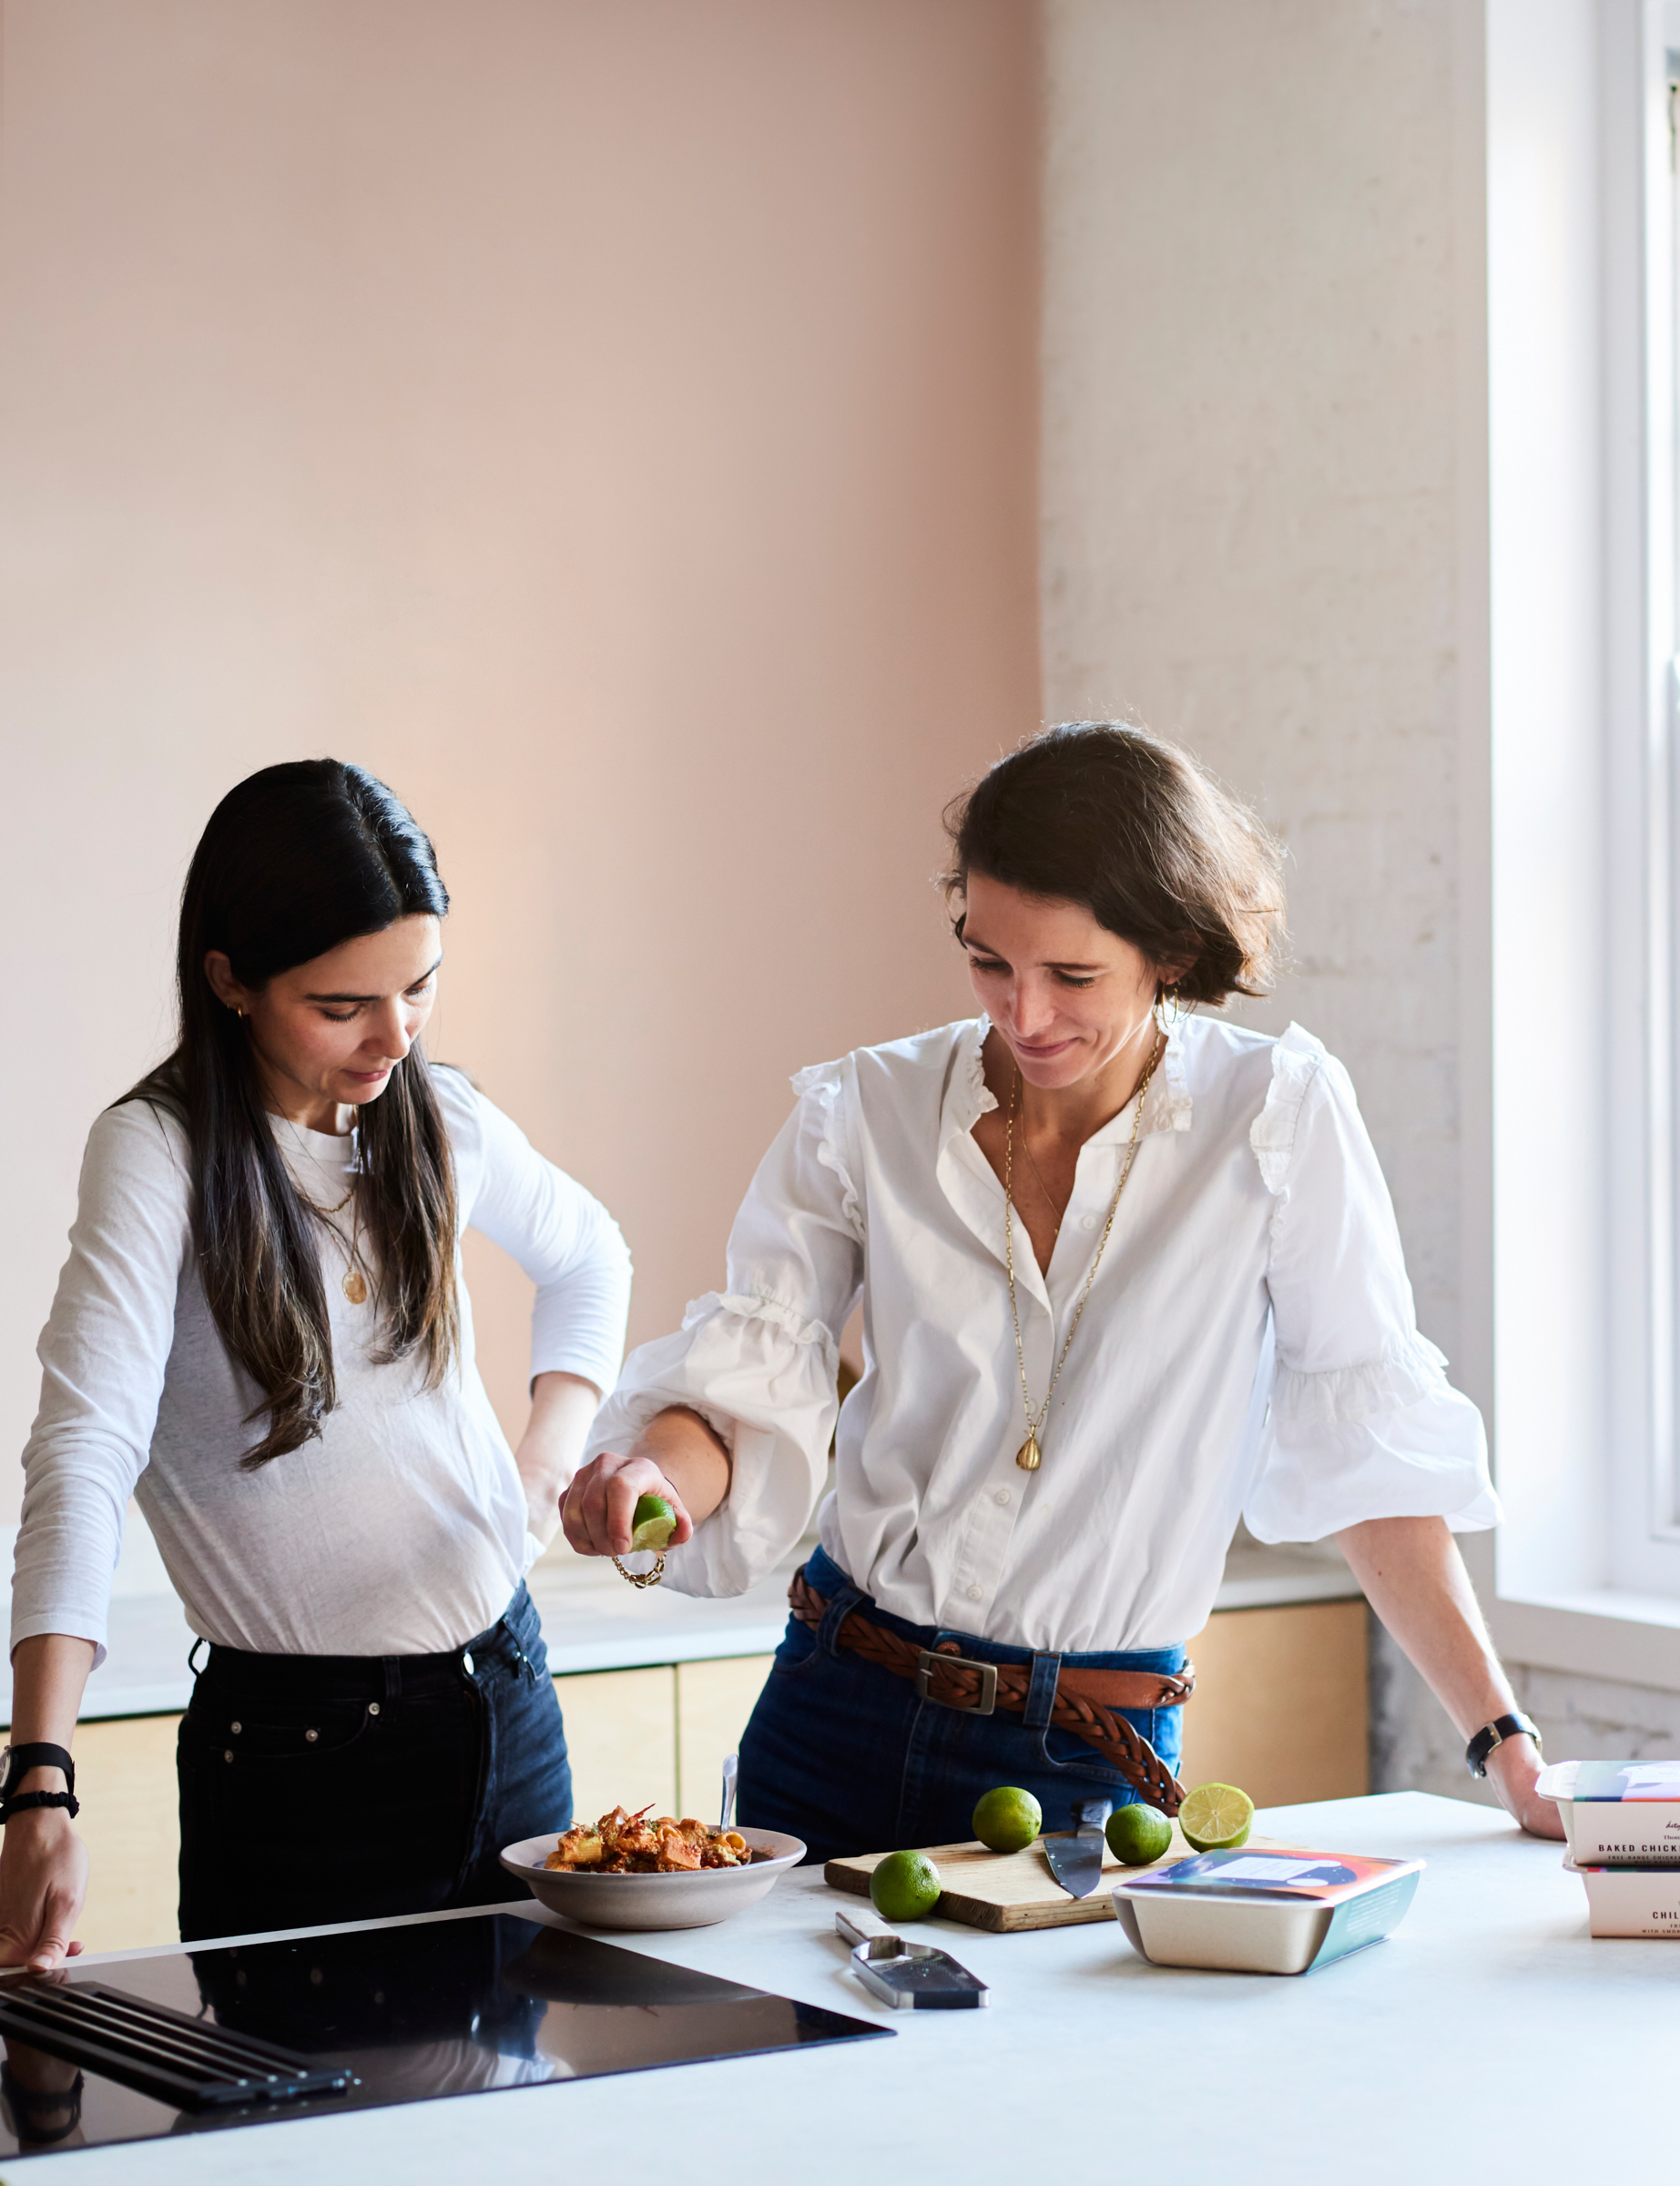 The Story Behind the Detox Kitchen x Thomasina Miers Range